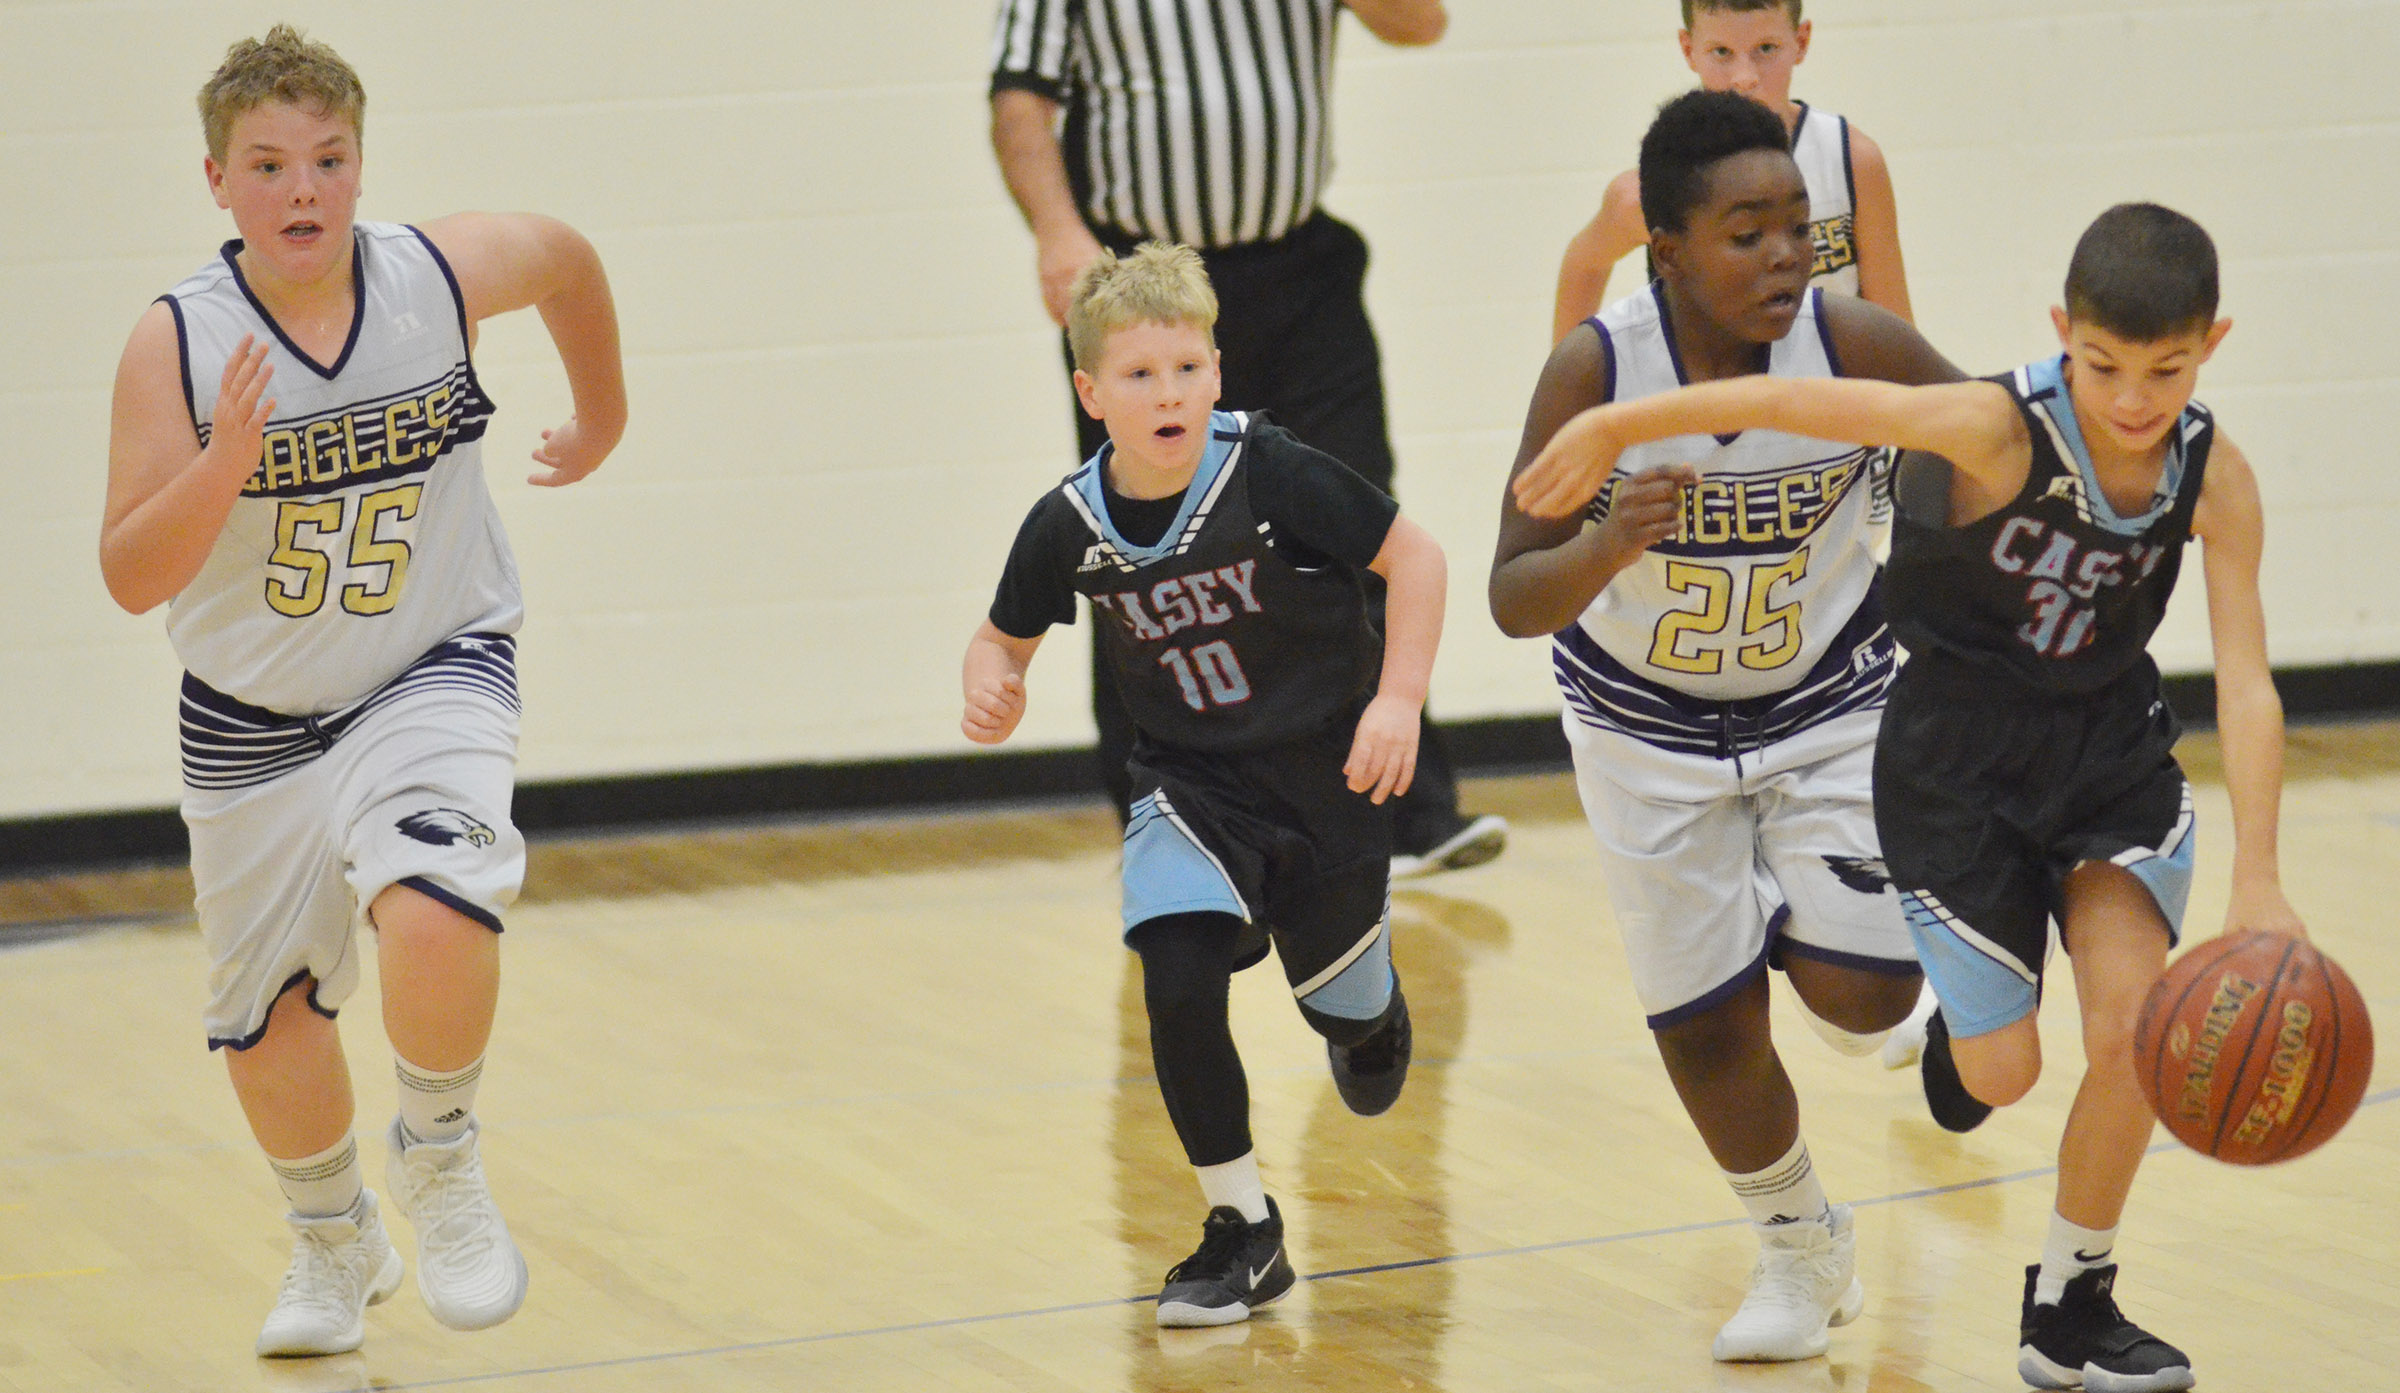 CMS sixth-grader Ryan Grubbs, at left, and Campbellsville Elementary School fifth-grader KeKe Miller play defense.